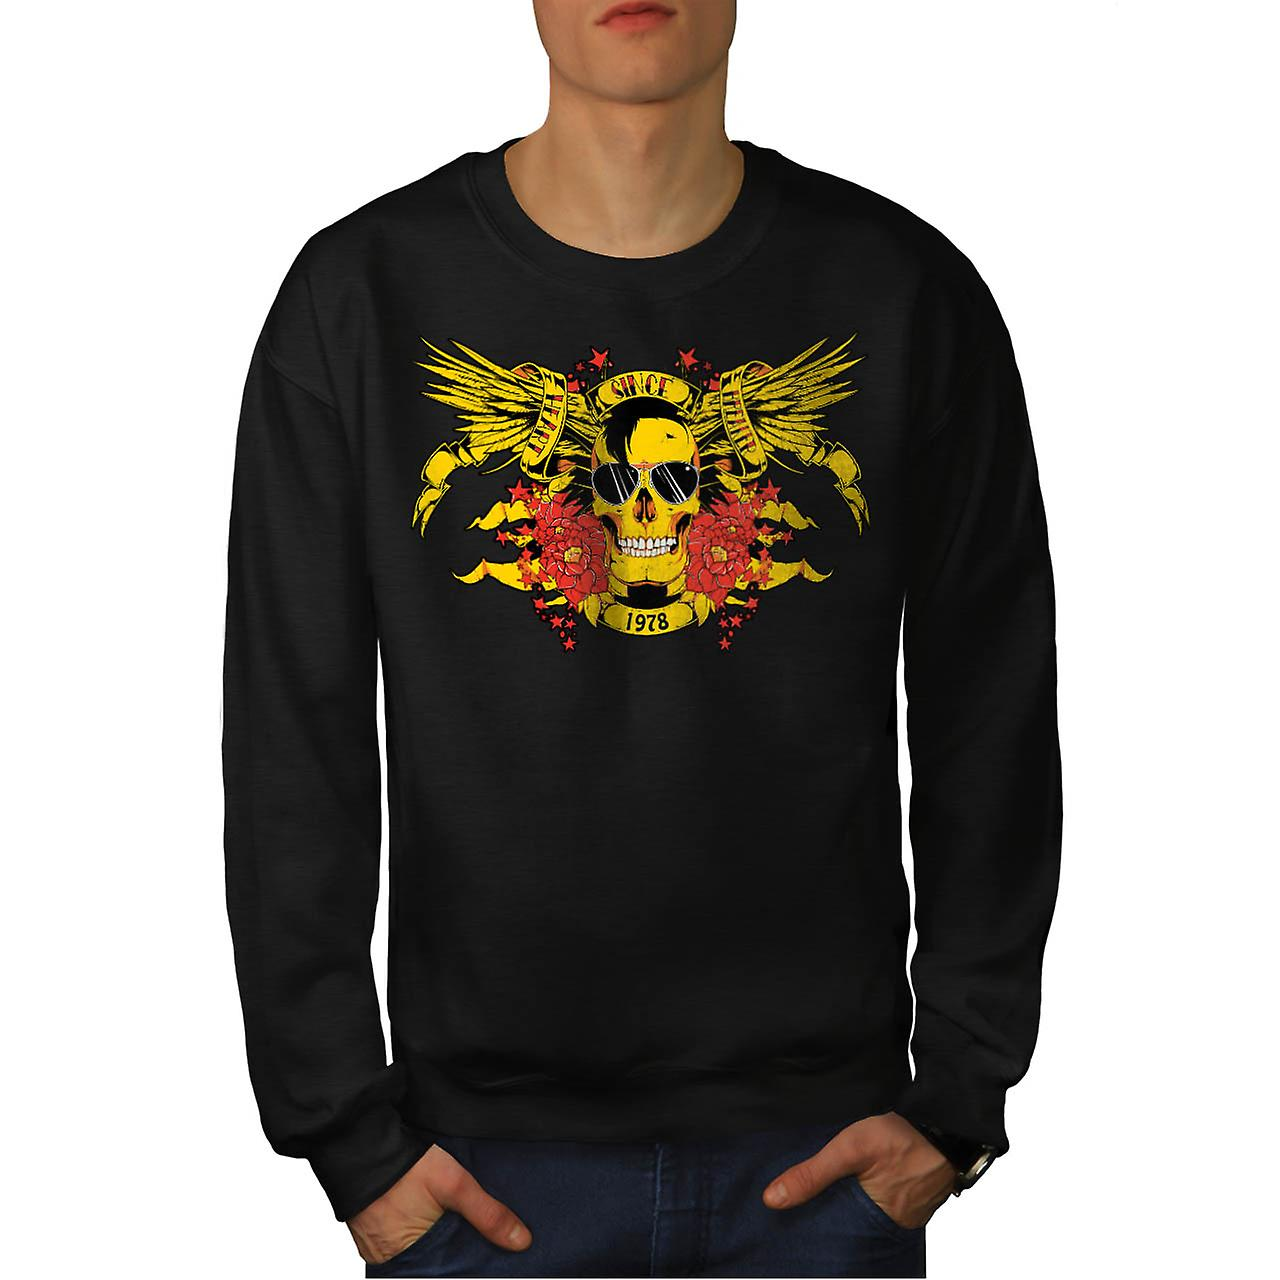 Heart Soul Breaker Heartbroken Men Black Sweatshirt | Wellcoda